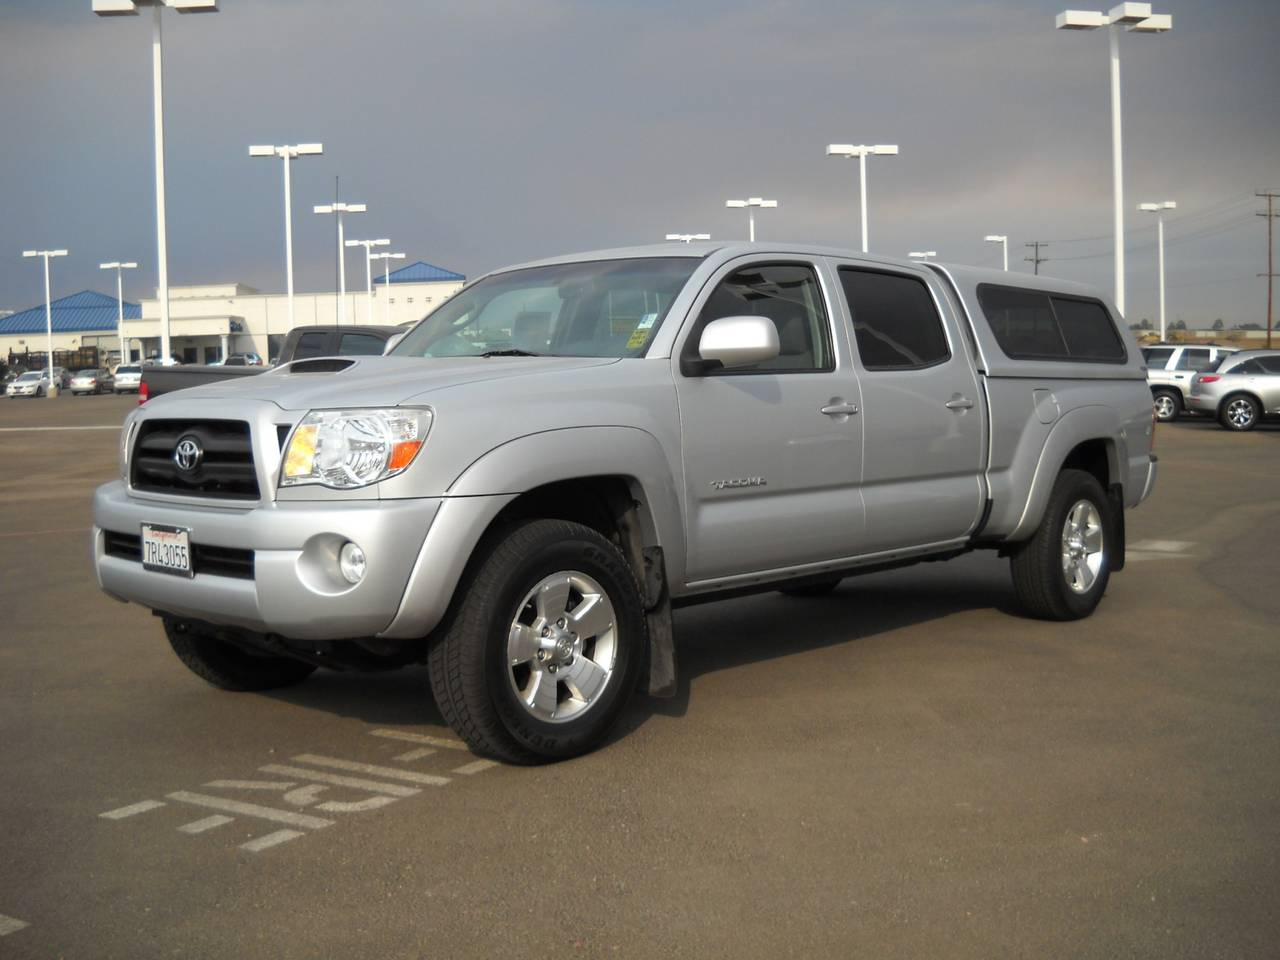 used 2007 toyota tacoma photos 4000cc gasoline. Black Bedroom Furniture Sets. Home Design Ideas